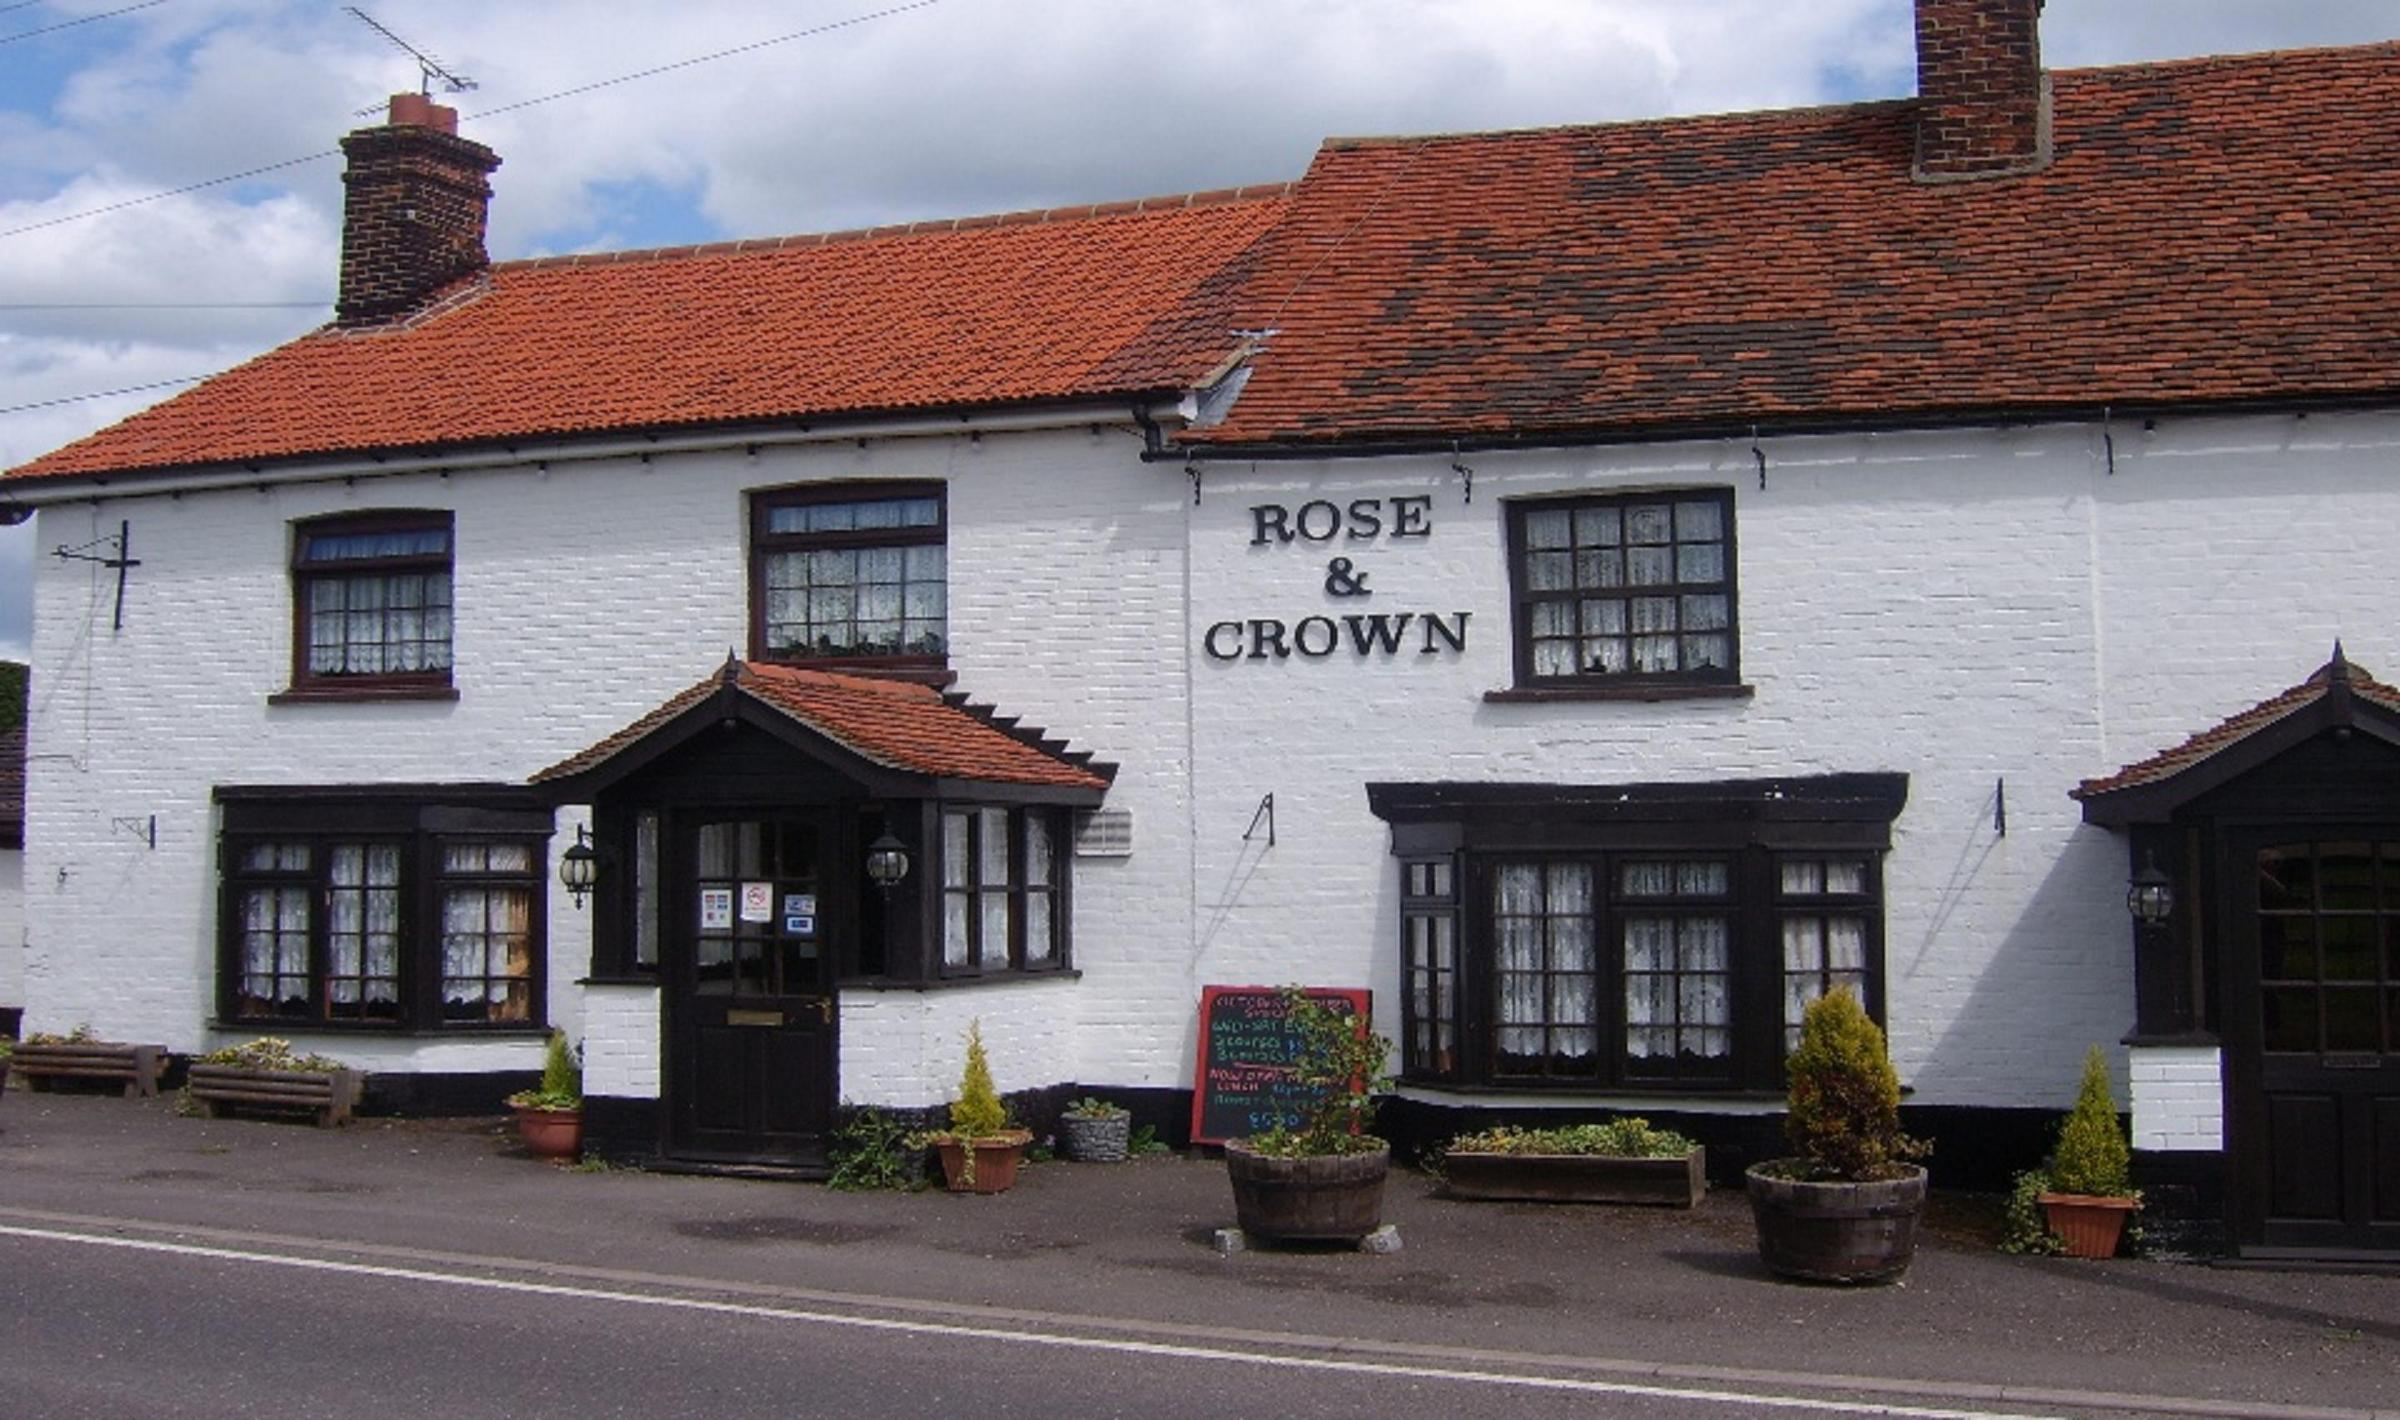 The Rose and Crown is no longer a viable business